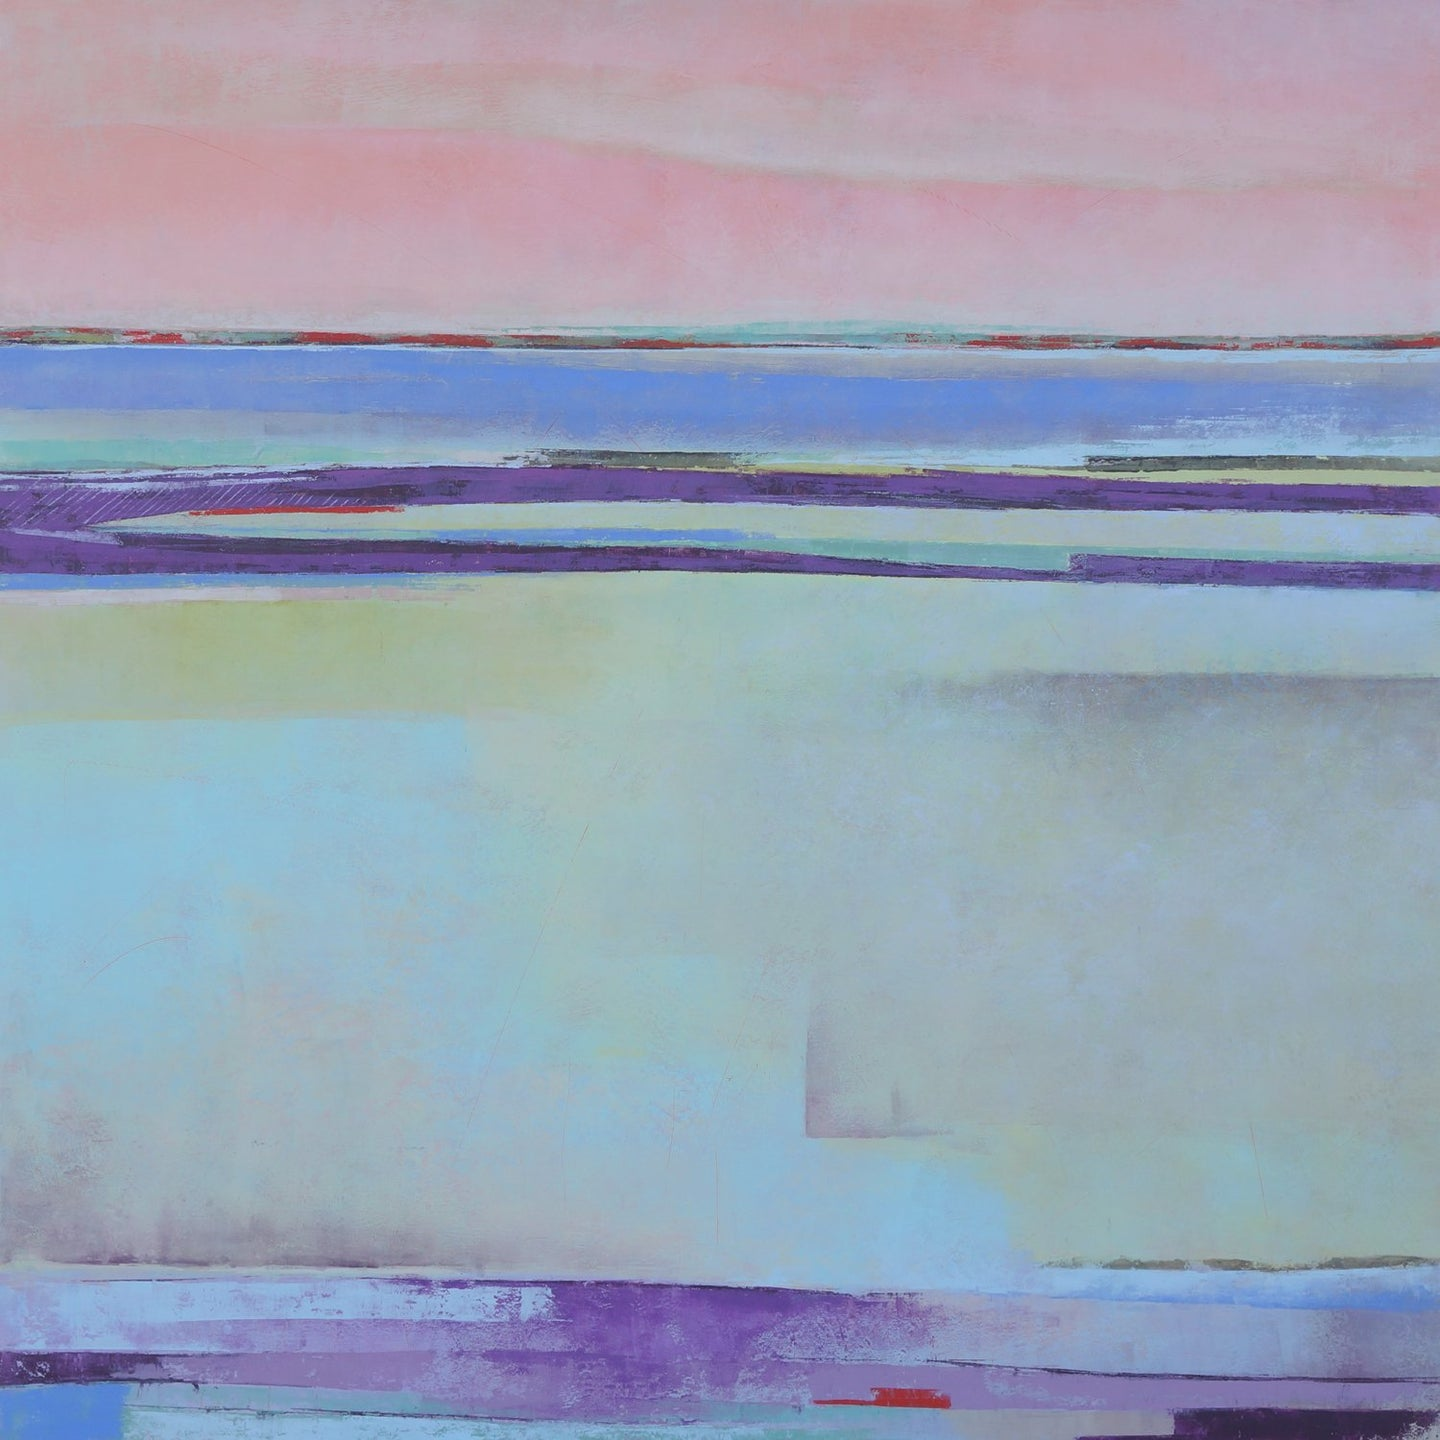 Purple abstract ocean painting